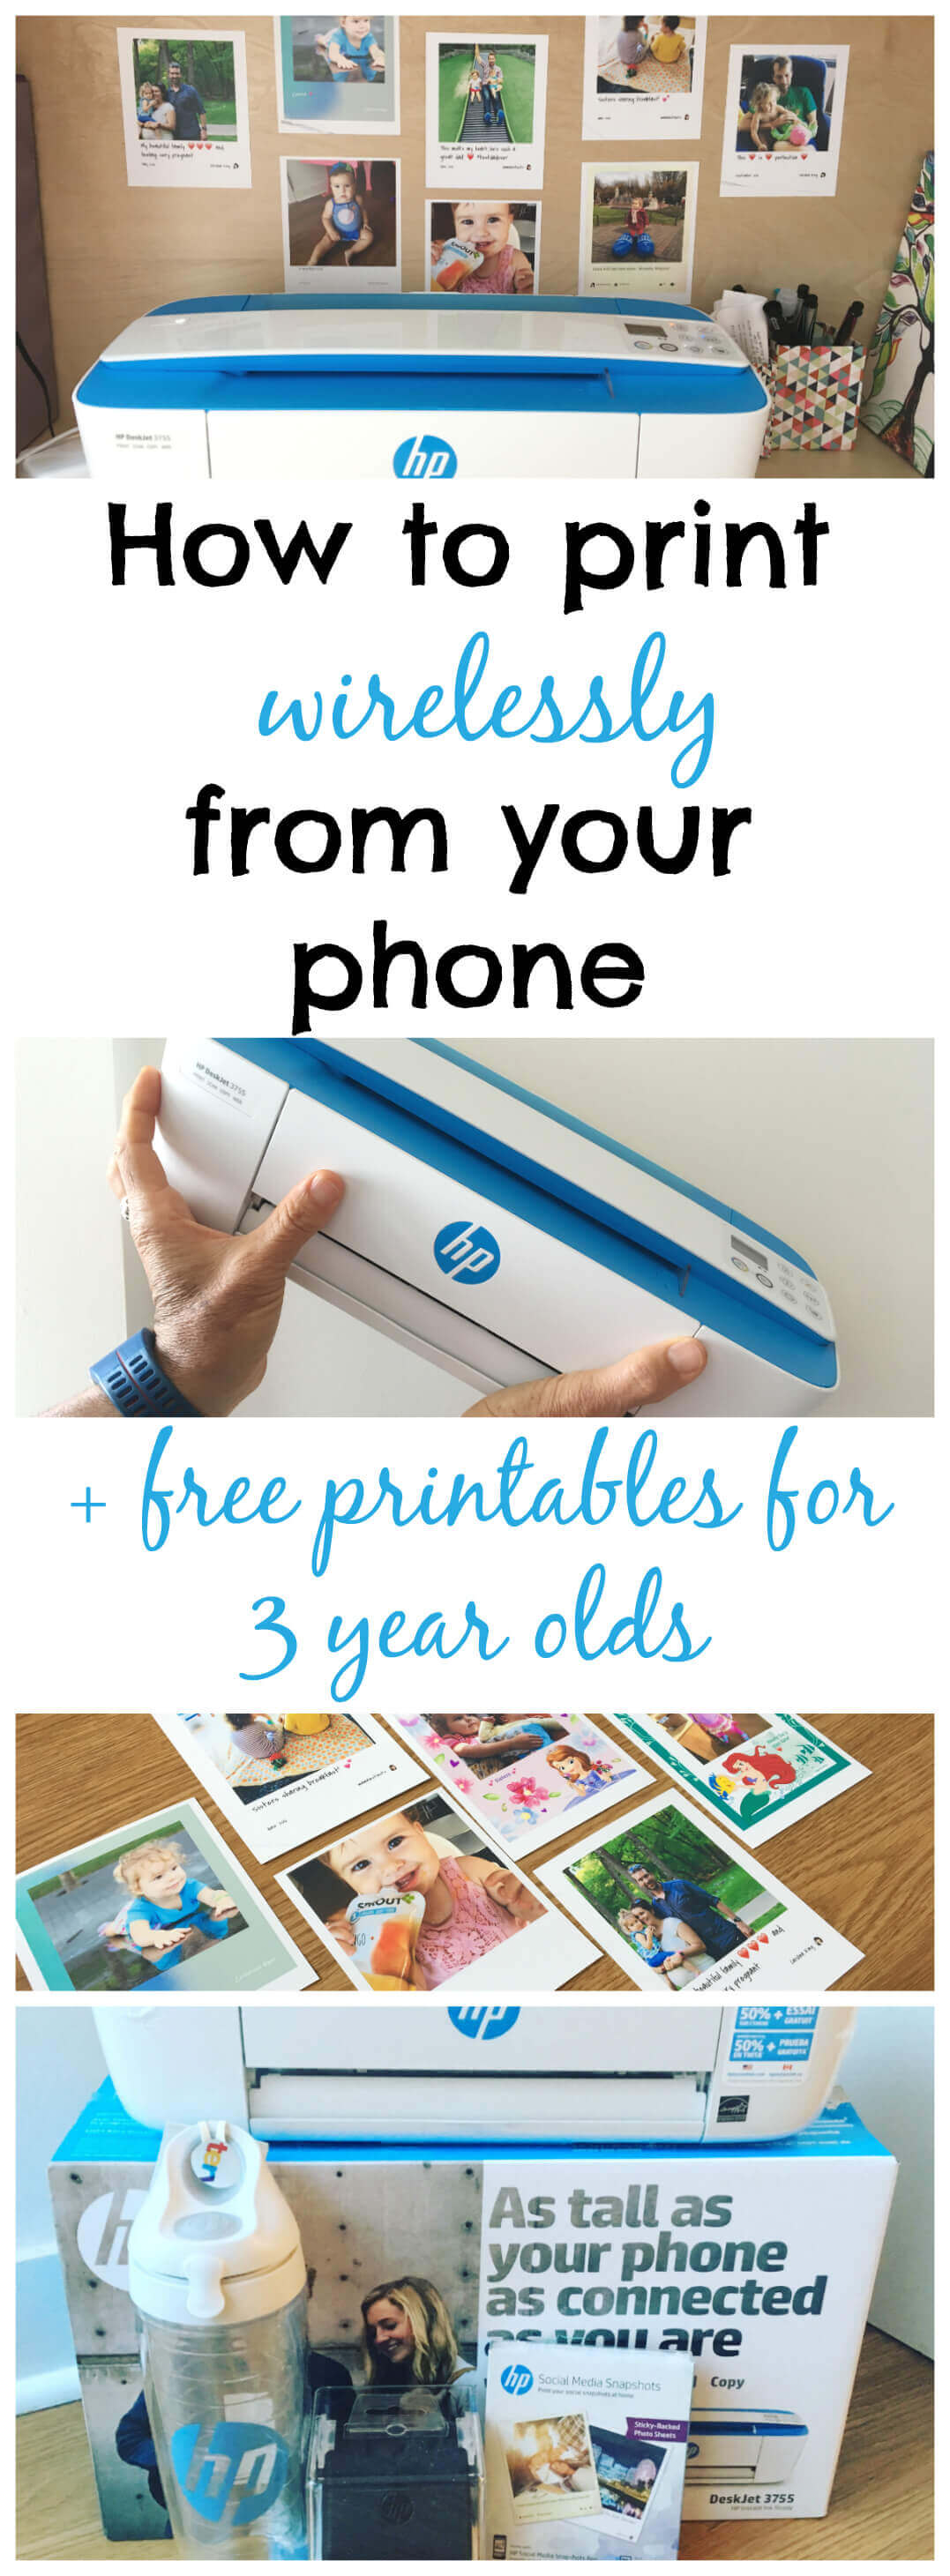 how to print wirelessly from your phone free printables for 3 year